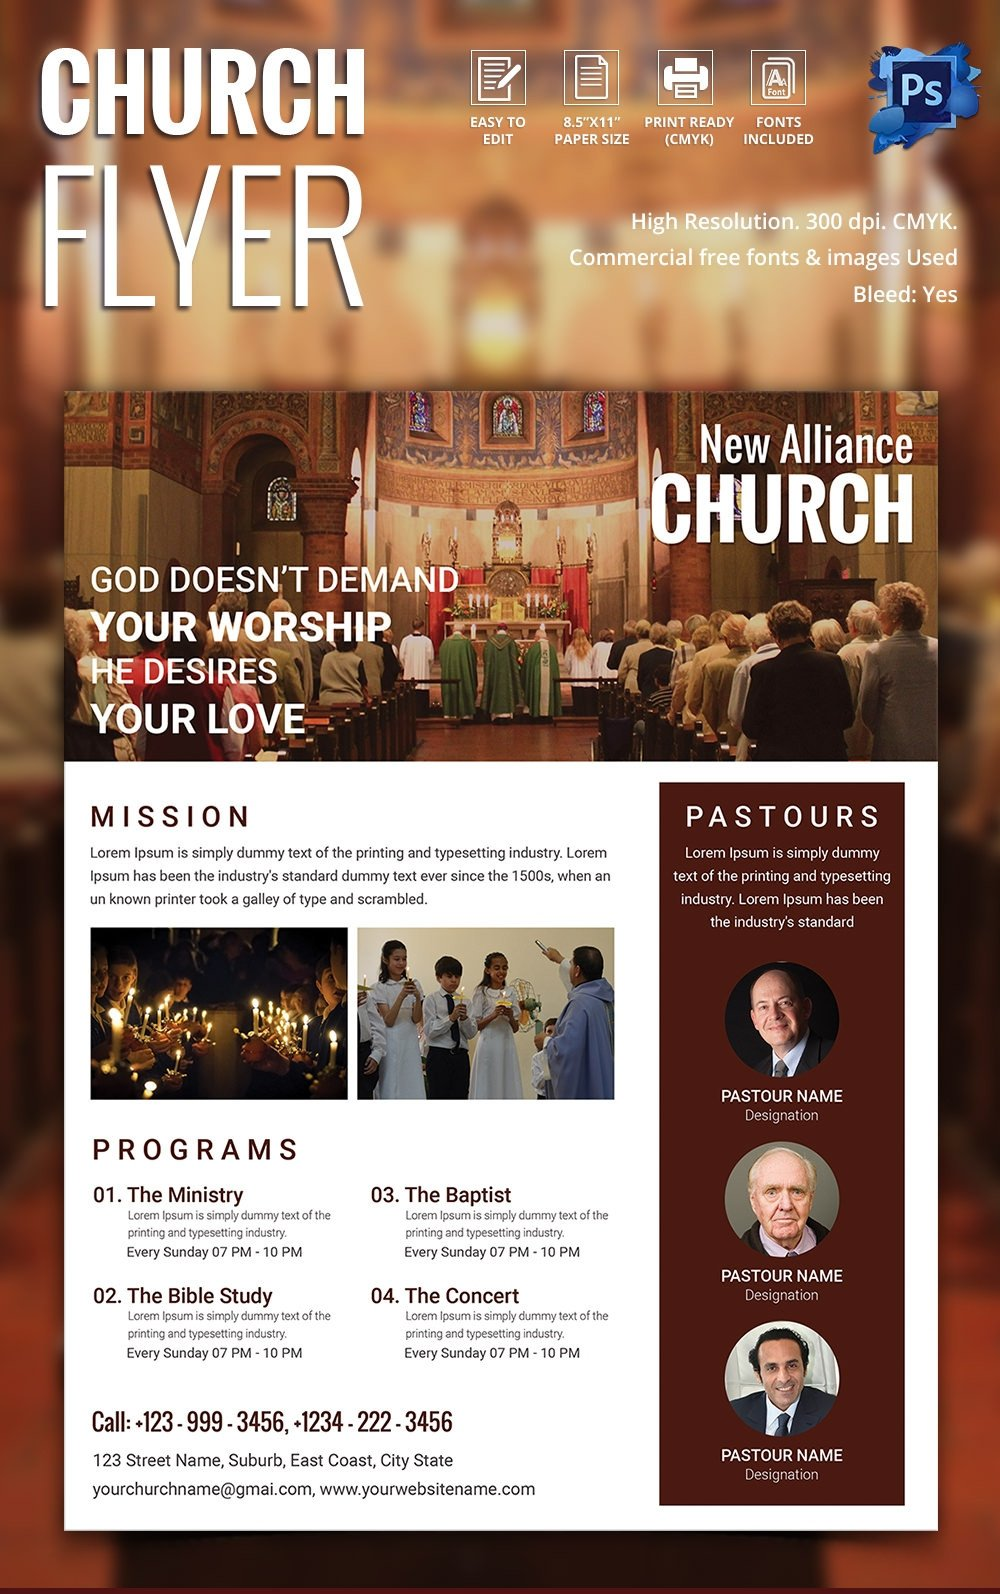 Church Flyer Templates Free 135 Psd Flyer Templates – Free Psd Eps Ai Indesign